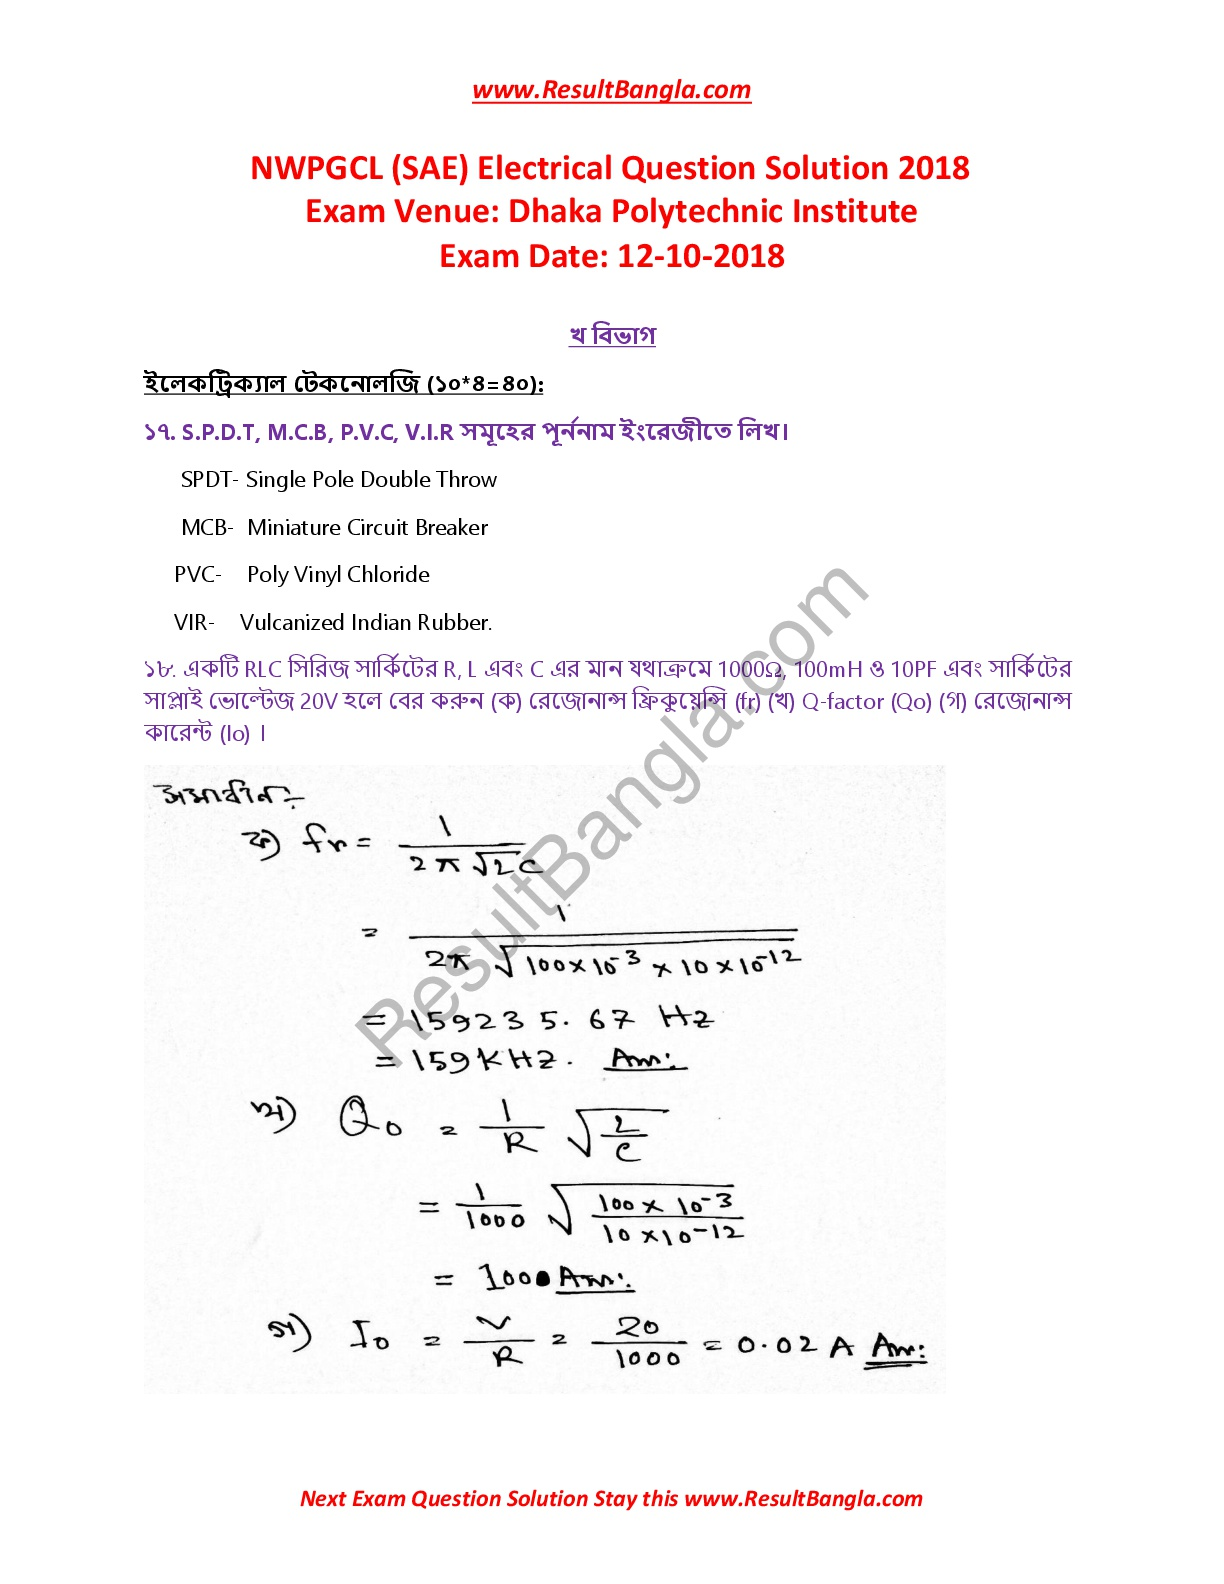 NWPGCL Electrical Question Solution 2018